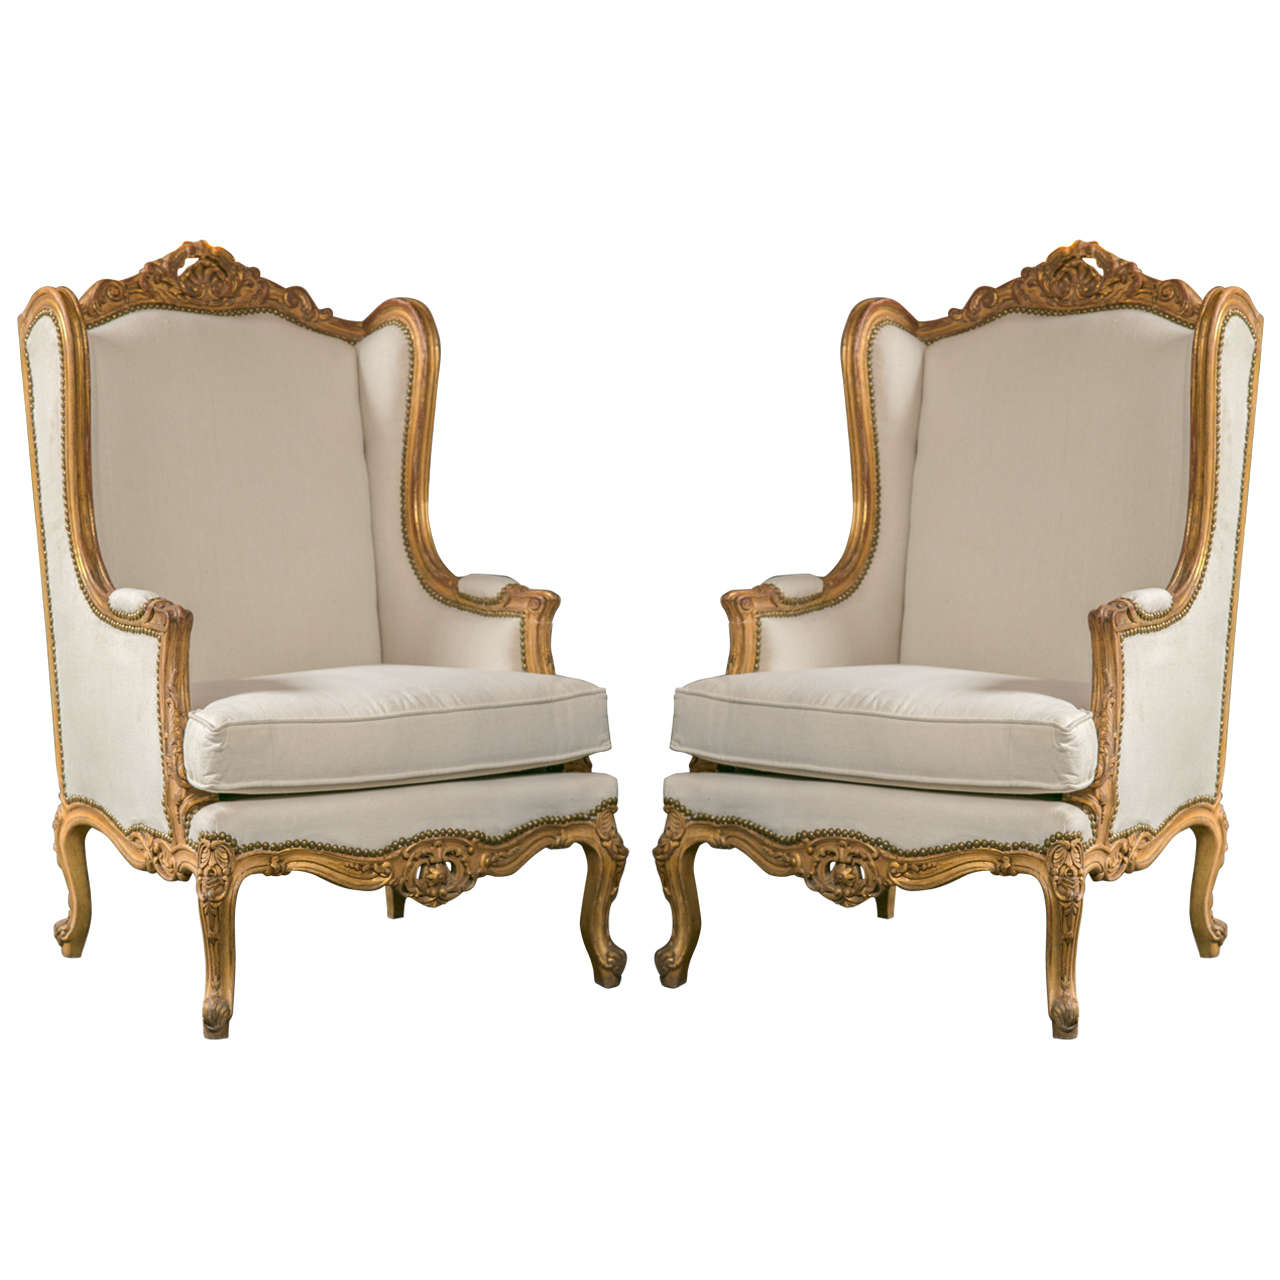 Pair of French Louis XV Style Wingback Bergere Chairs For Sale - Pair Of French Louis XV Style Wingback Bergere Chairs At 1stdibs